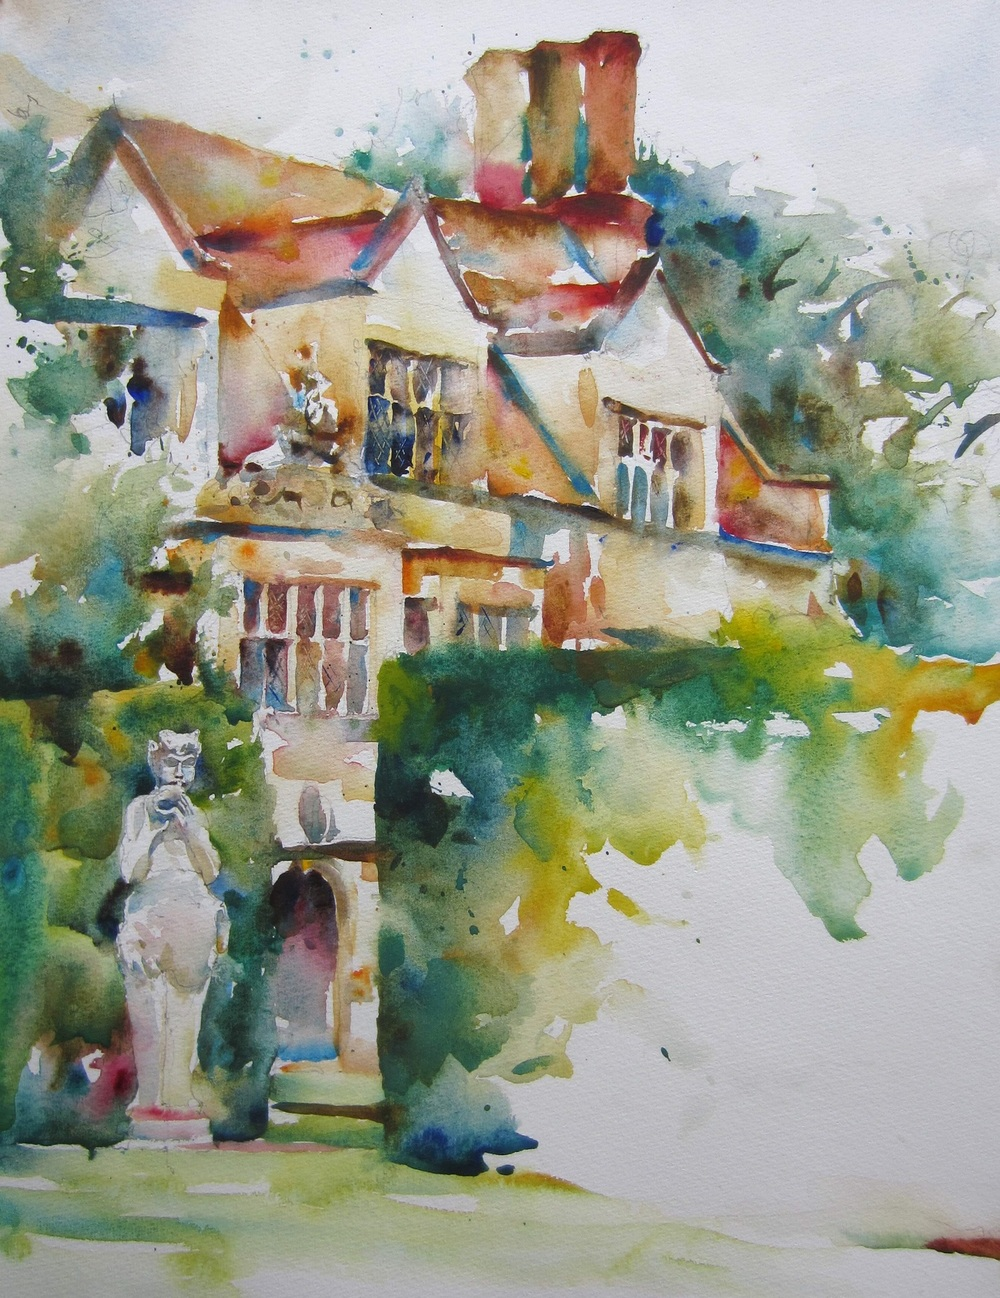 Anglesey Abbey watercolour 40 x 50 cm £475